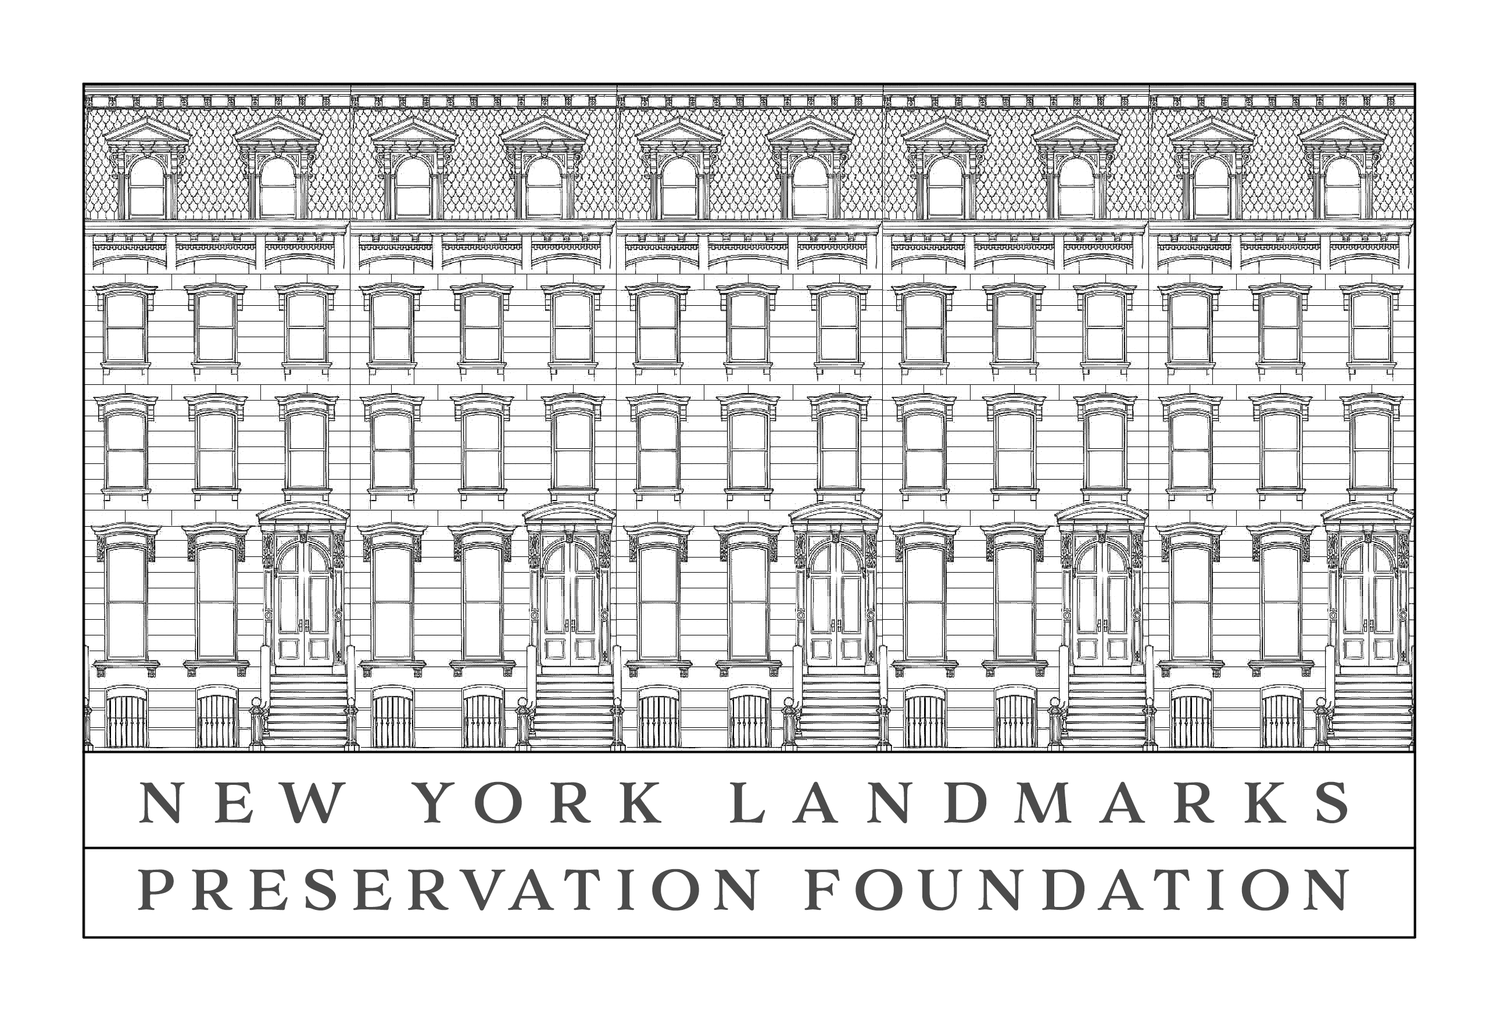 Image of New York Landmark Preservation Foundation logo which includes a black and white outline of an historic building facade.